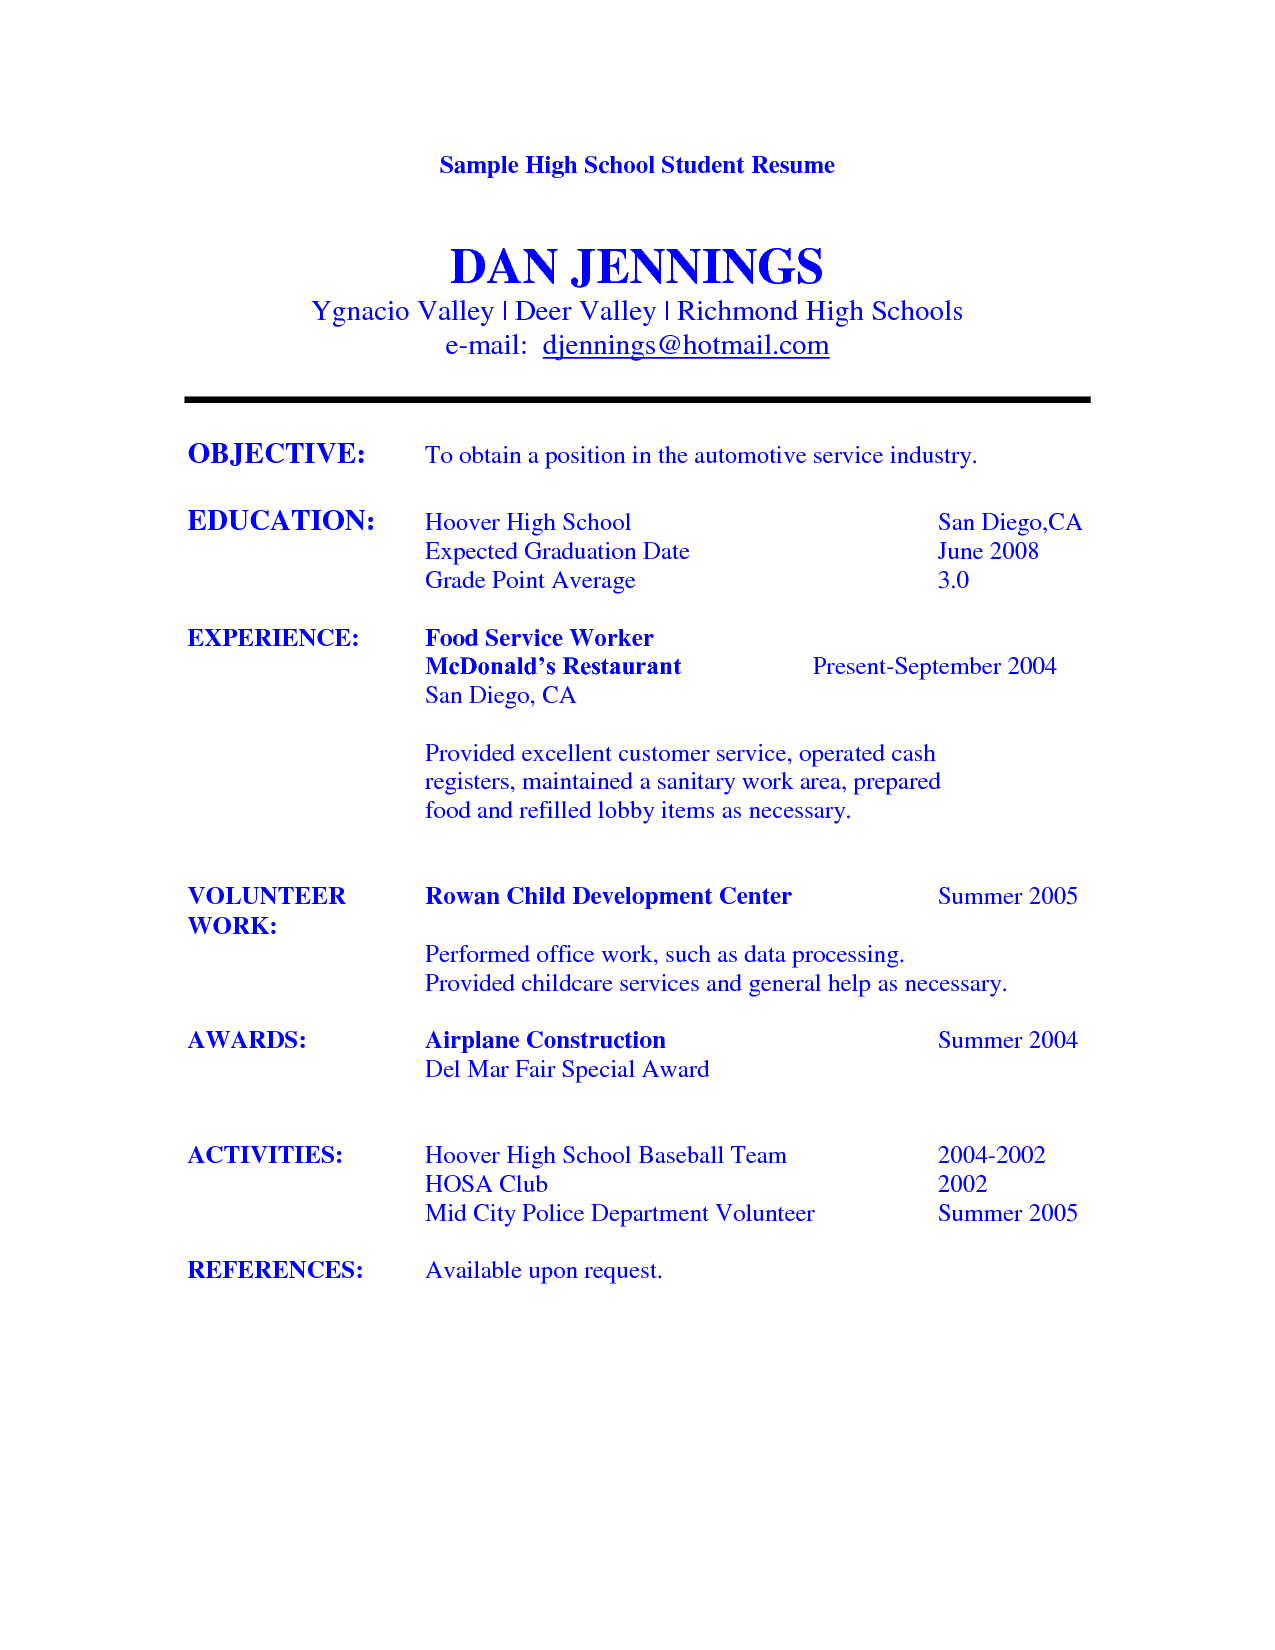 High School Resume Templates Resume Example For High School Student Sample Resumes  Httpwww